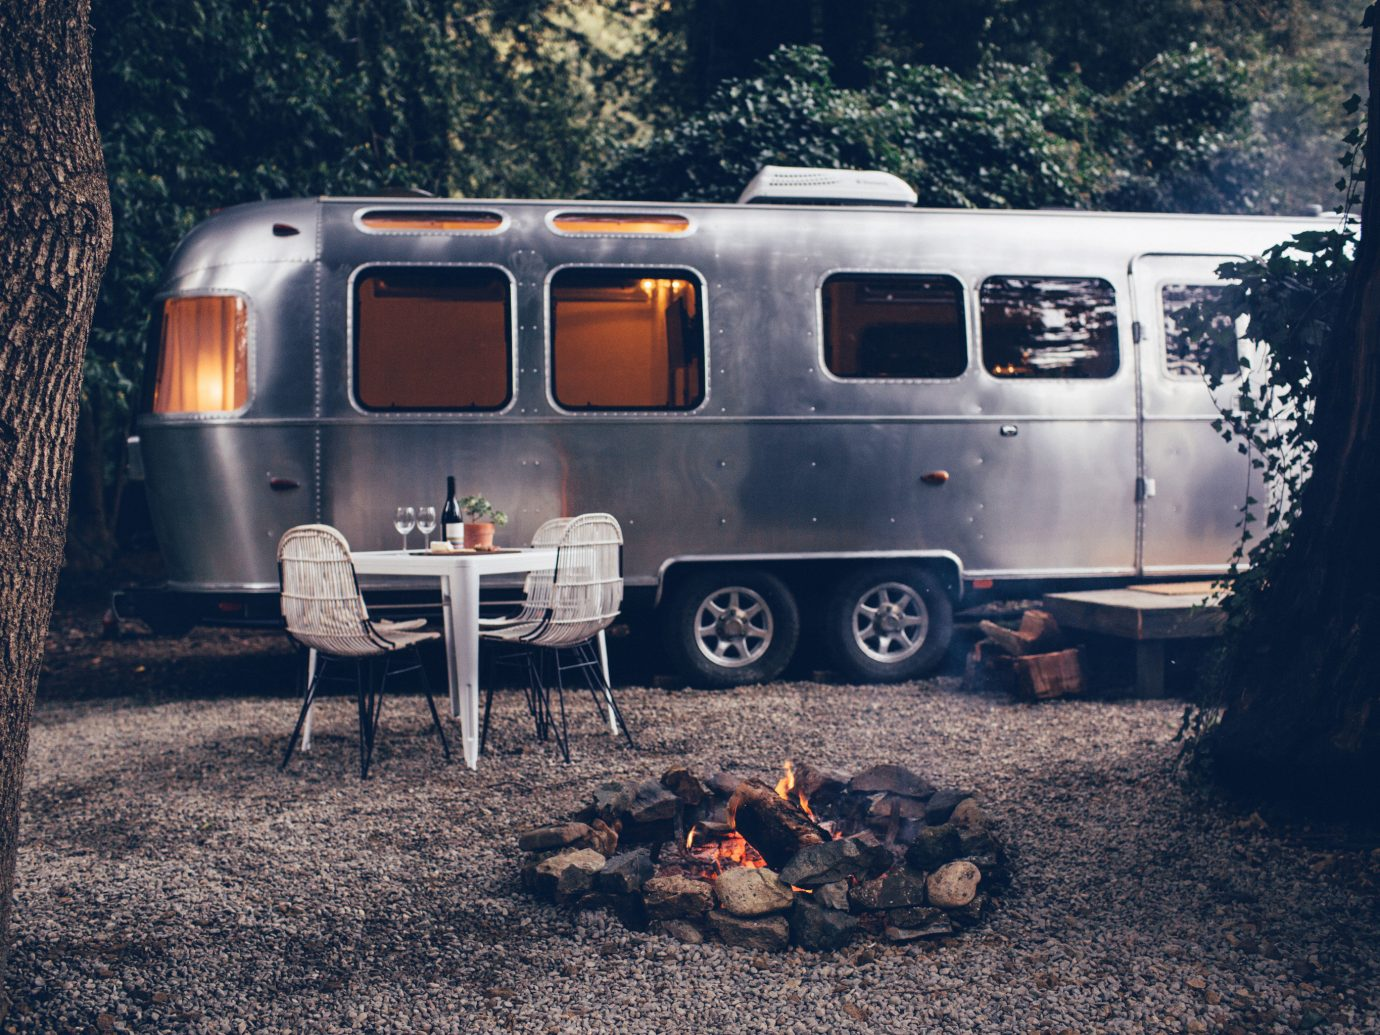 Glamping Luxury Travel Outdoors + Adventure tree outdoor ground transport vehicle car camper trailer